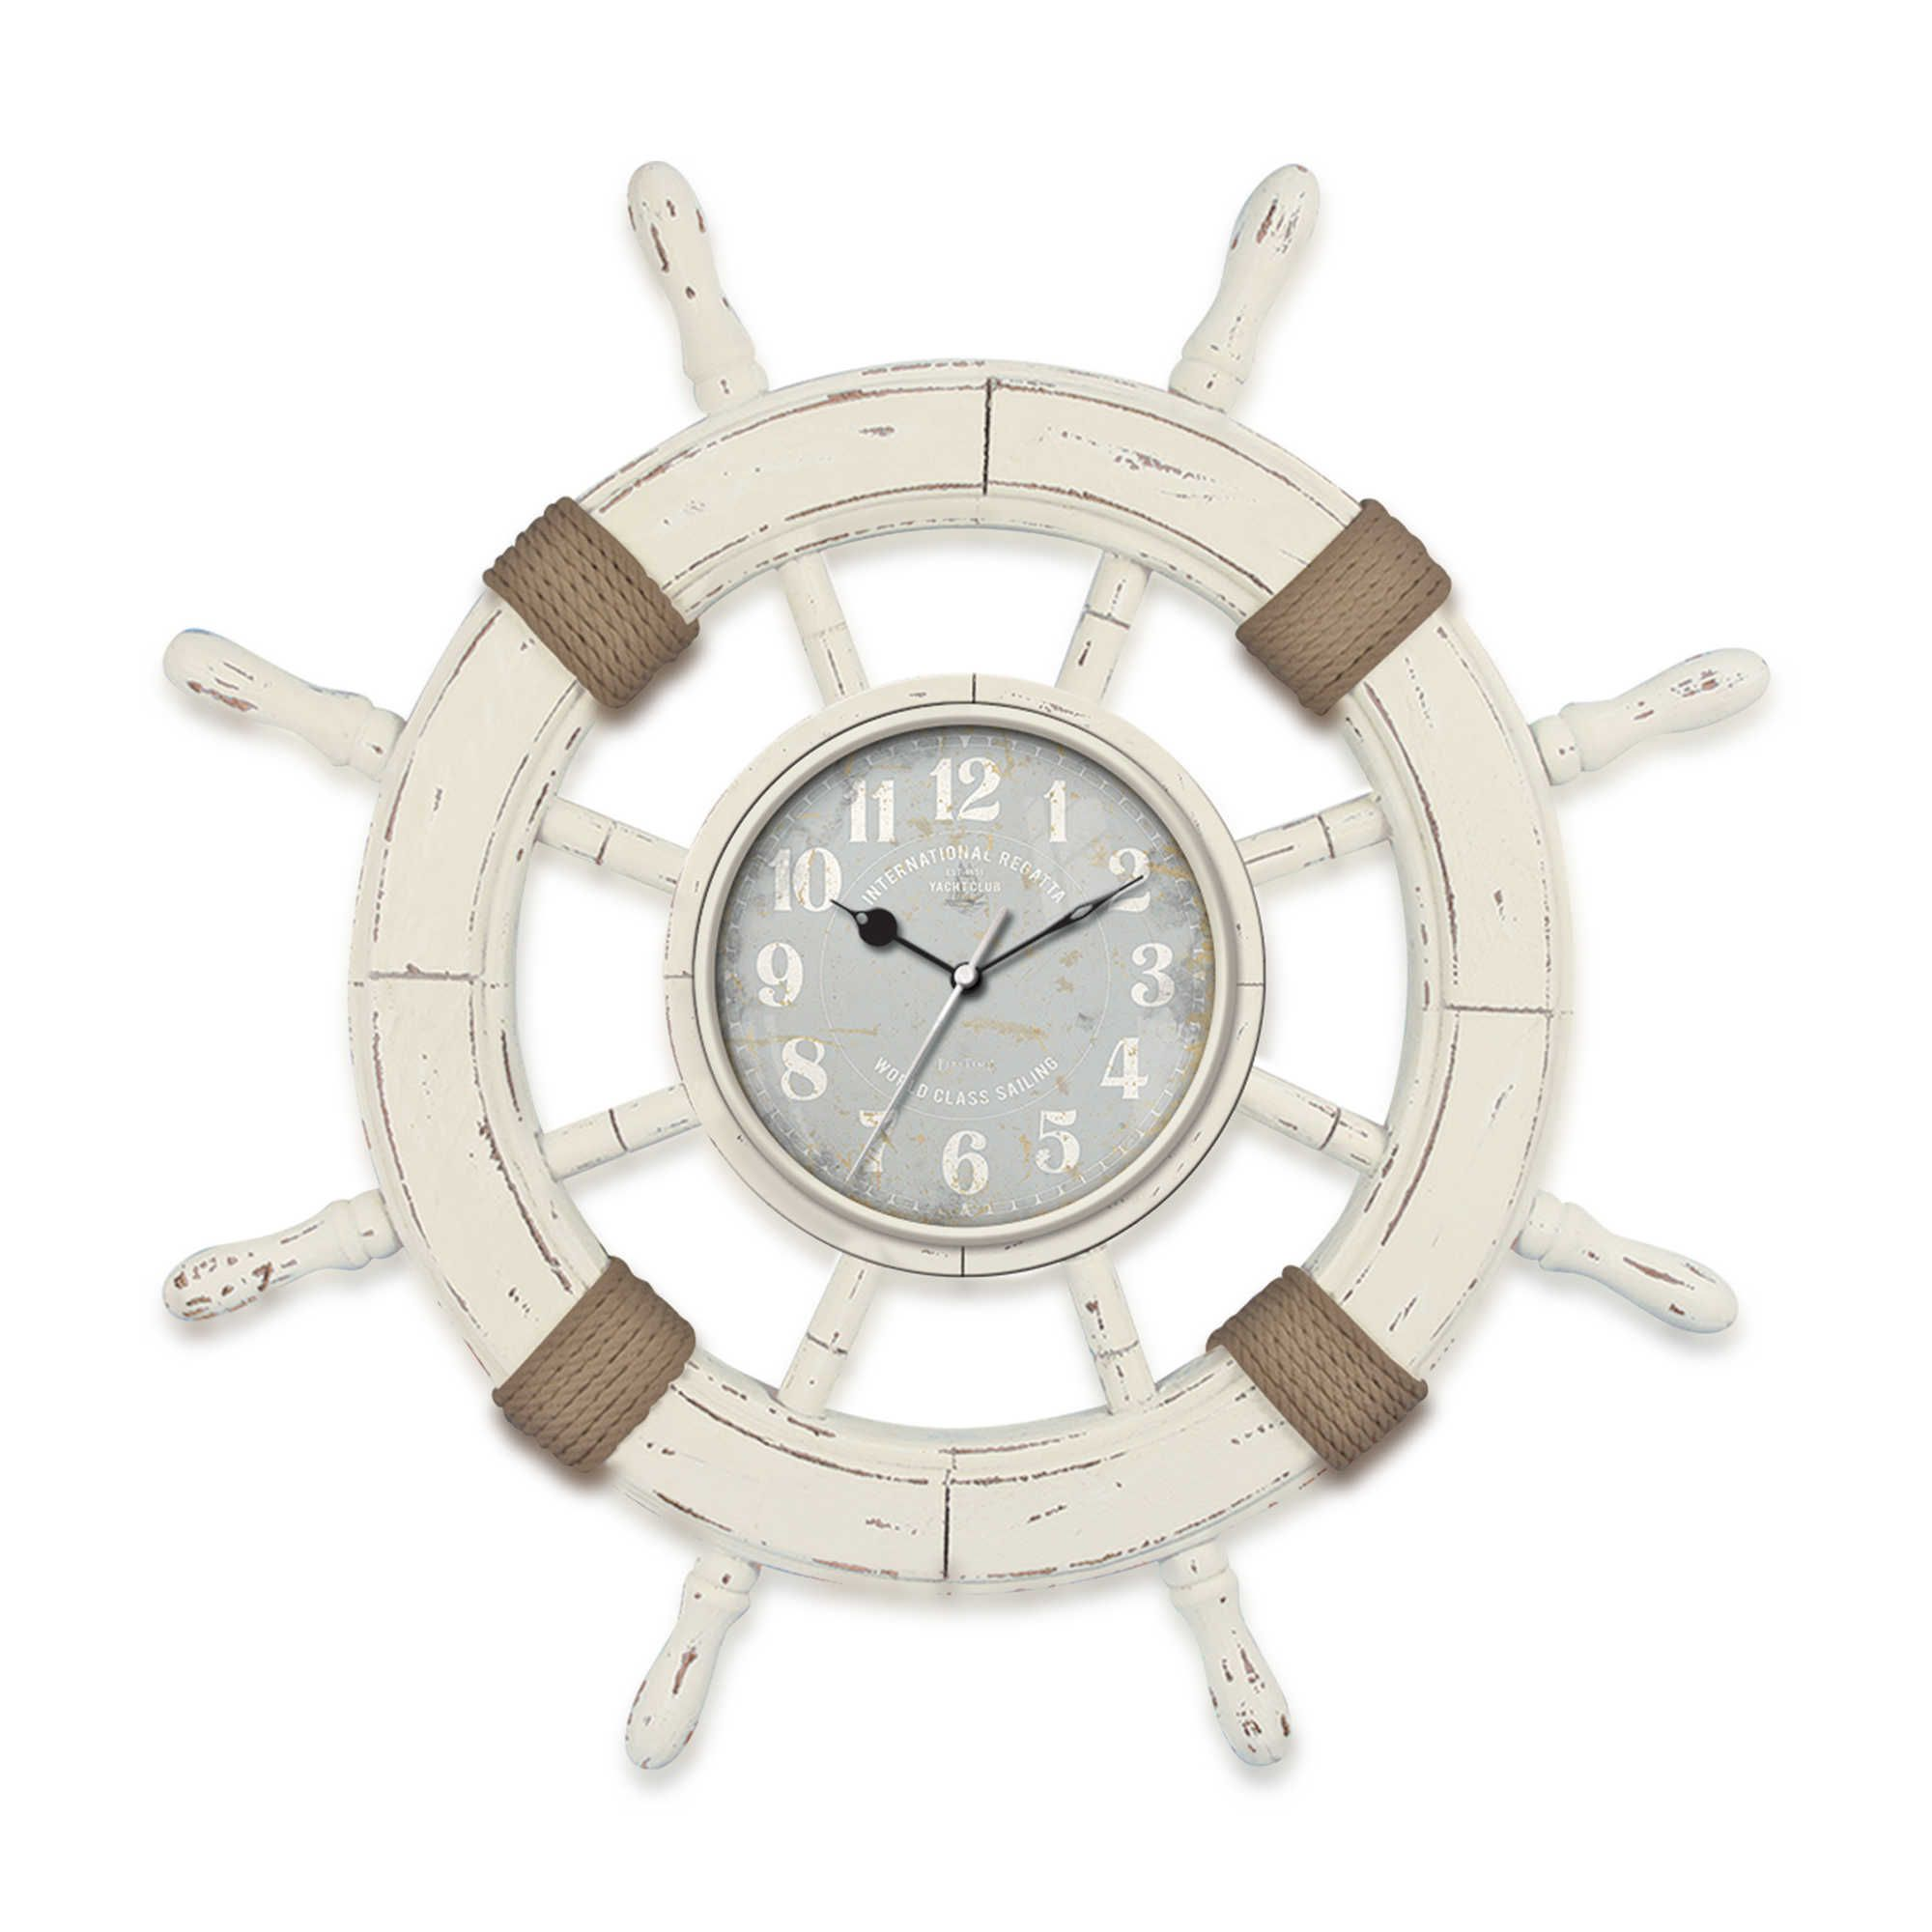 The Ultimate In Nautical Style, The FirsTime Ship Wheel Wall Clock Boasts  An Aged Ivory Finish, Wrapped Rope Accents And A Chic, Sky Blue Dial With  White ... Pictures Gallery